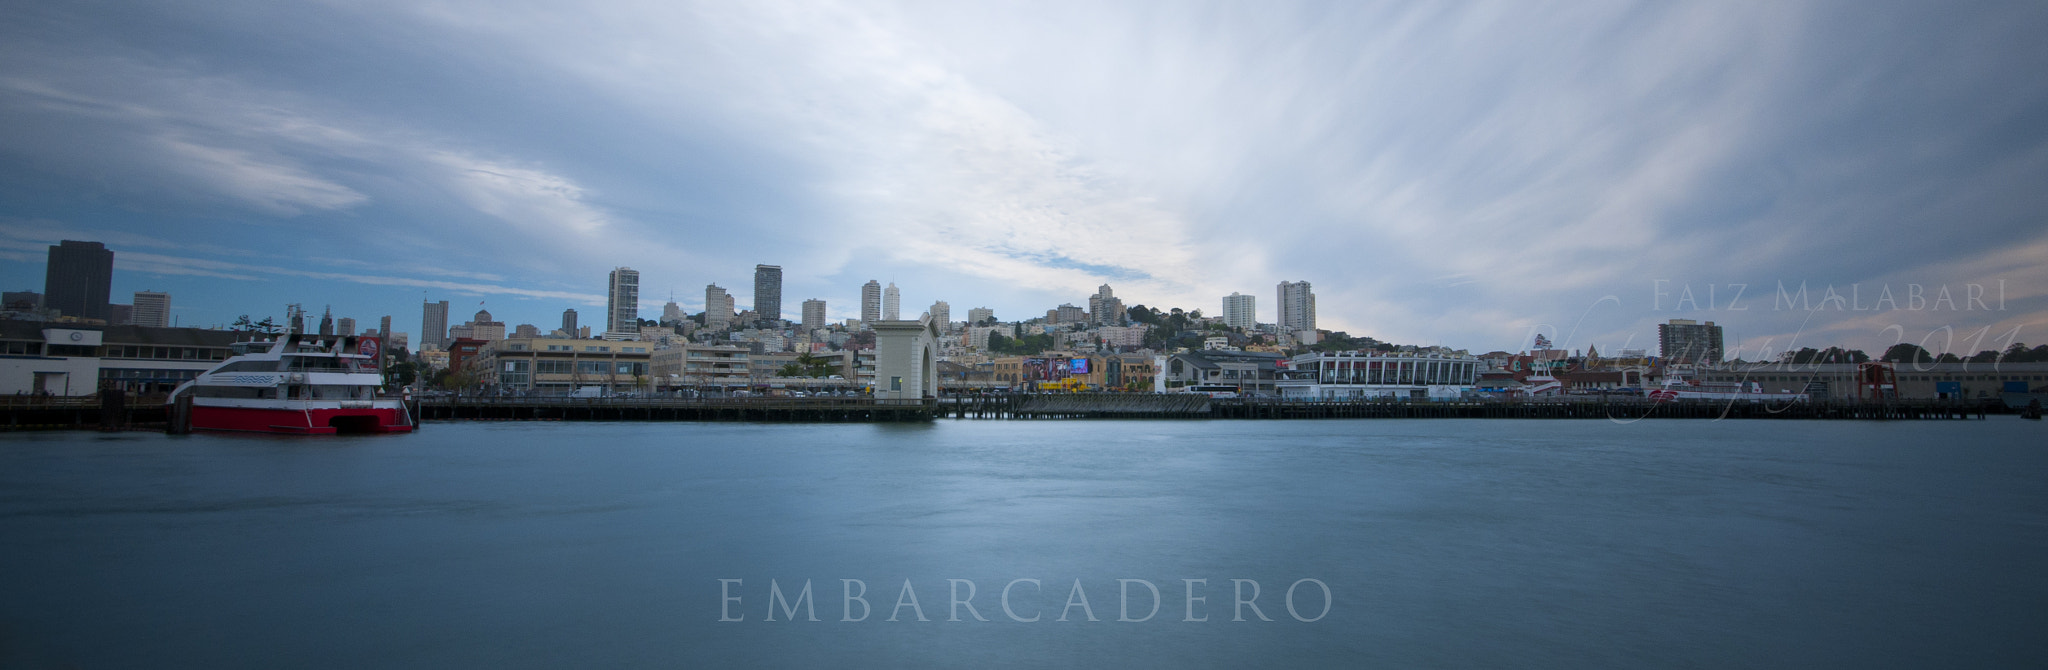 Photograph Embarcadero by Fayiz Melibary on 500px